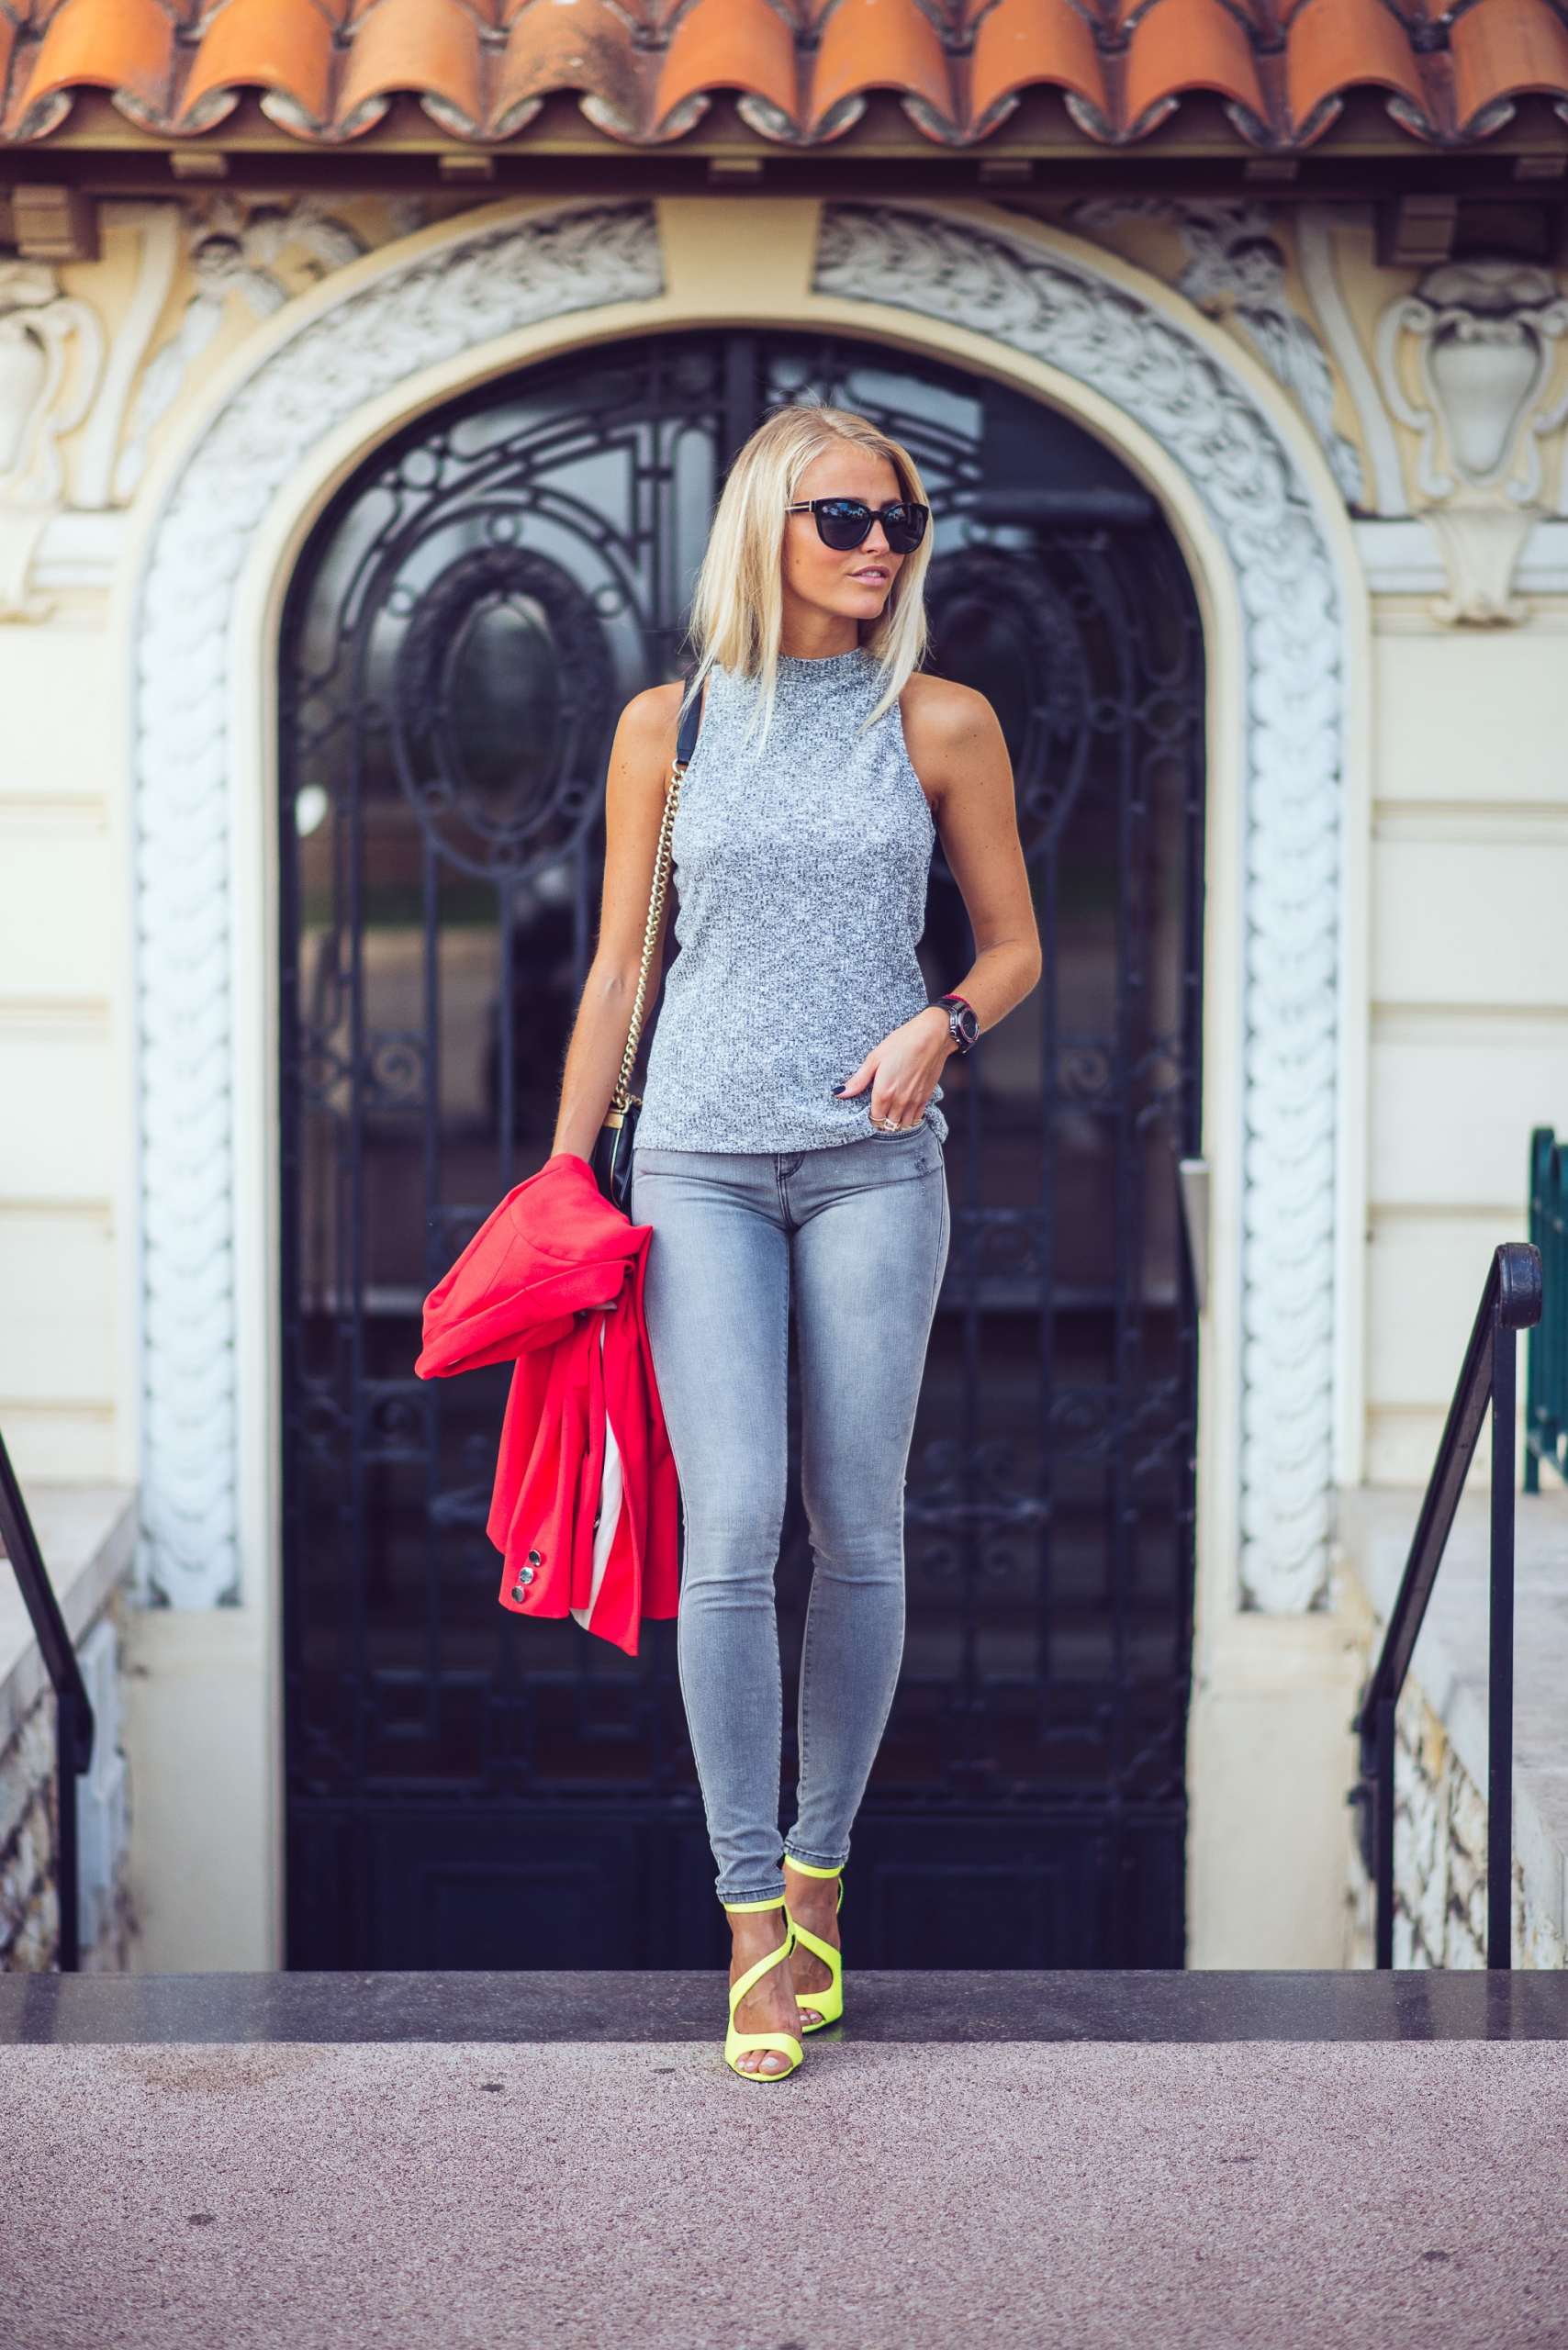 Janni Deler is wearing a grey fitted crop top, red relaxed fit blazer and grey superskinny jeans and yellow asymmetric stilettos all from River Island